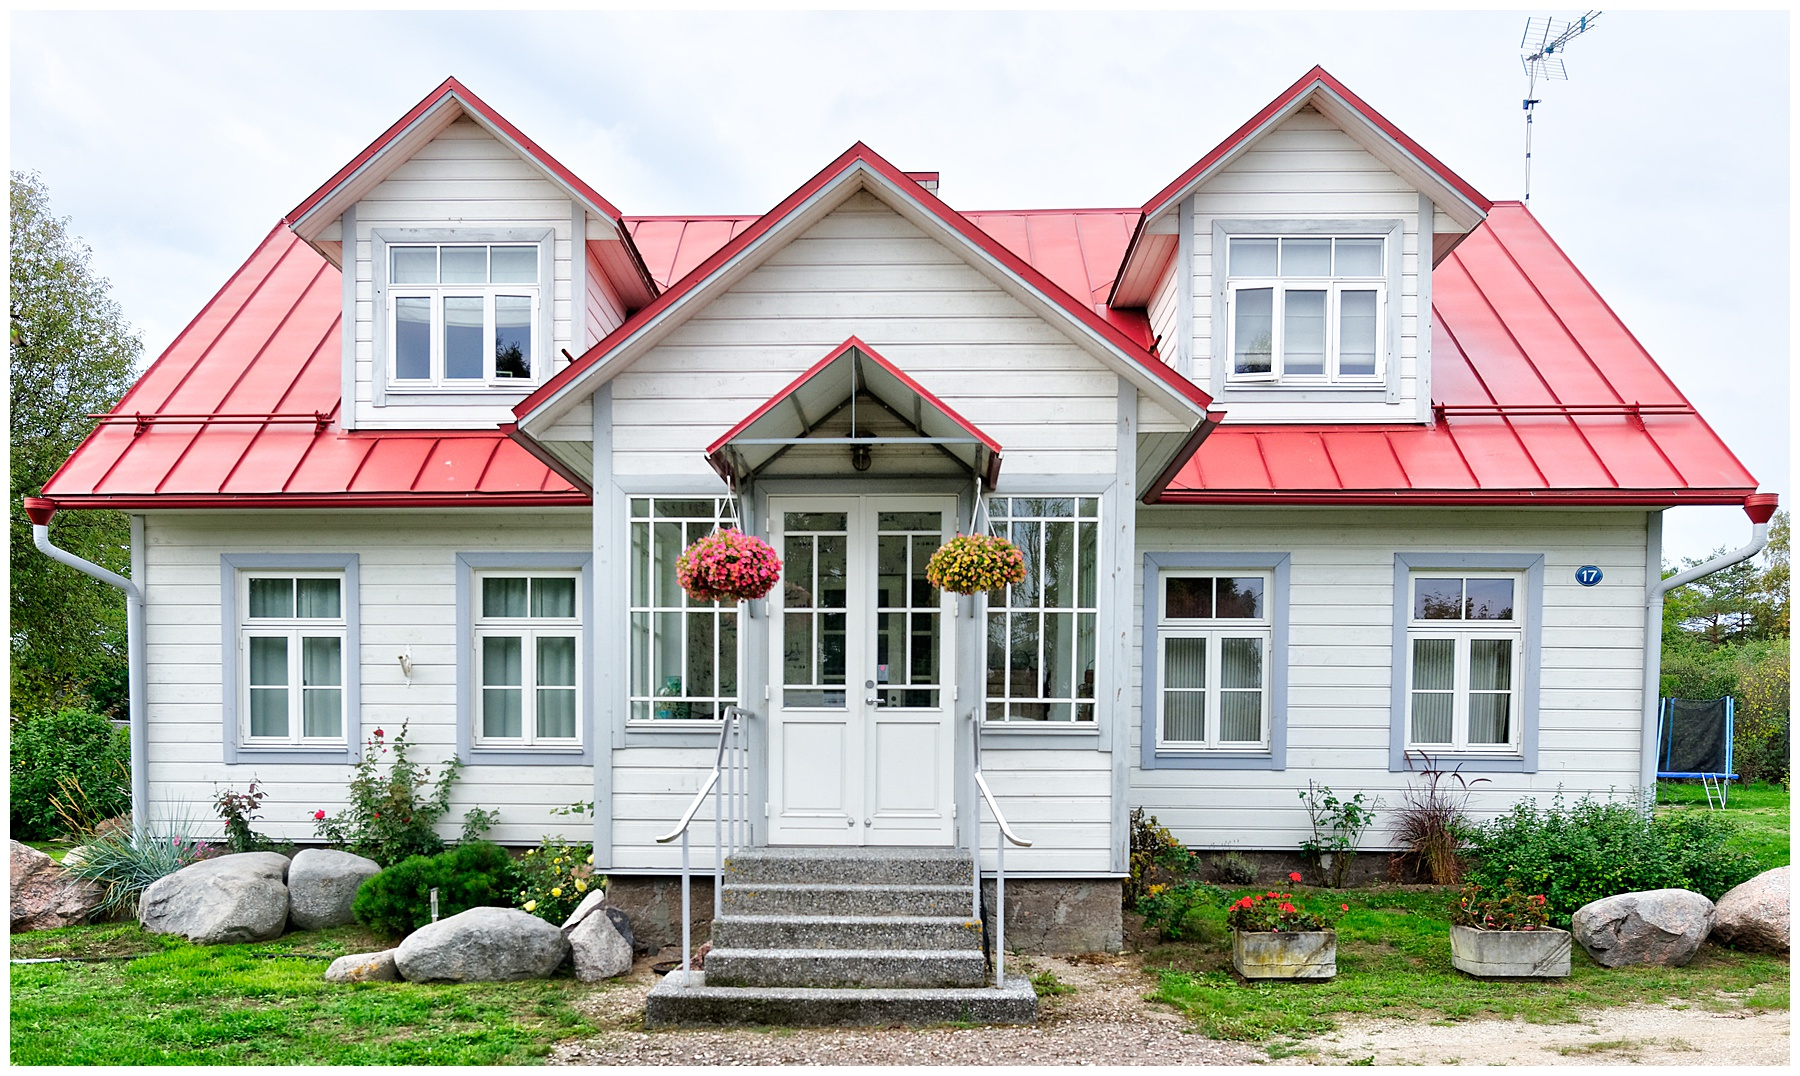 Exterior of a home with red tin roof and planters by the from door. Images for whether you should buy or build a home.